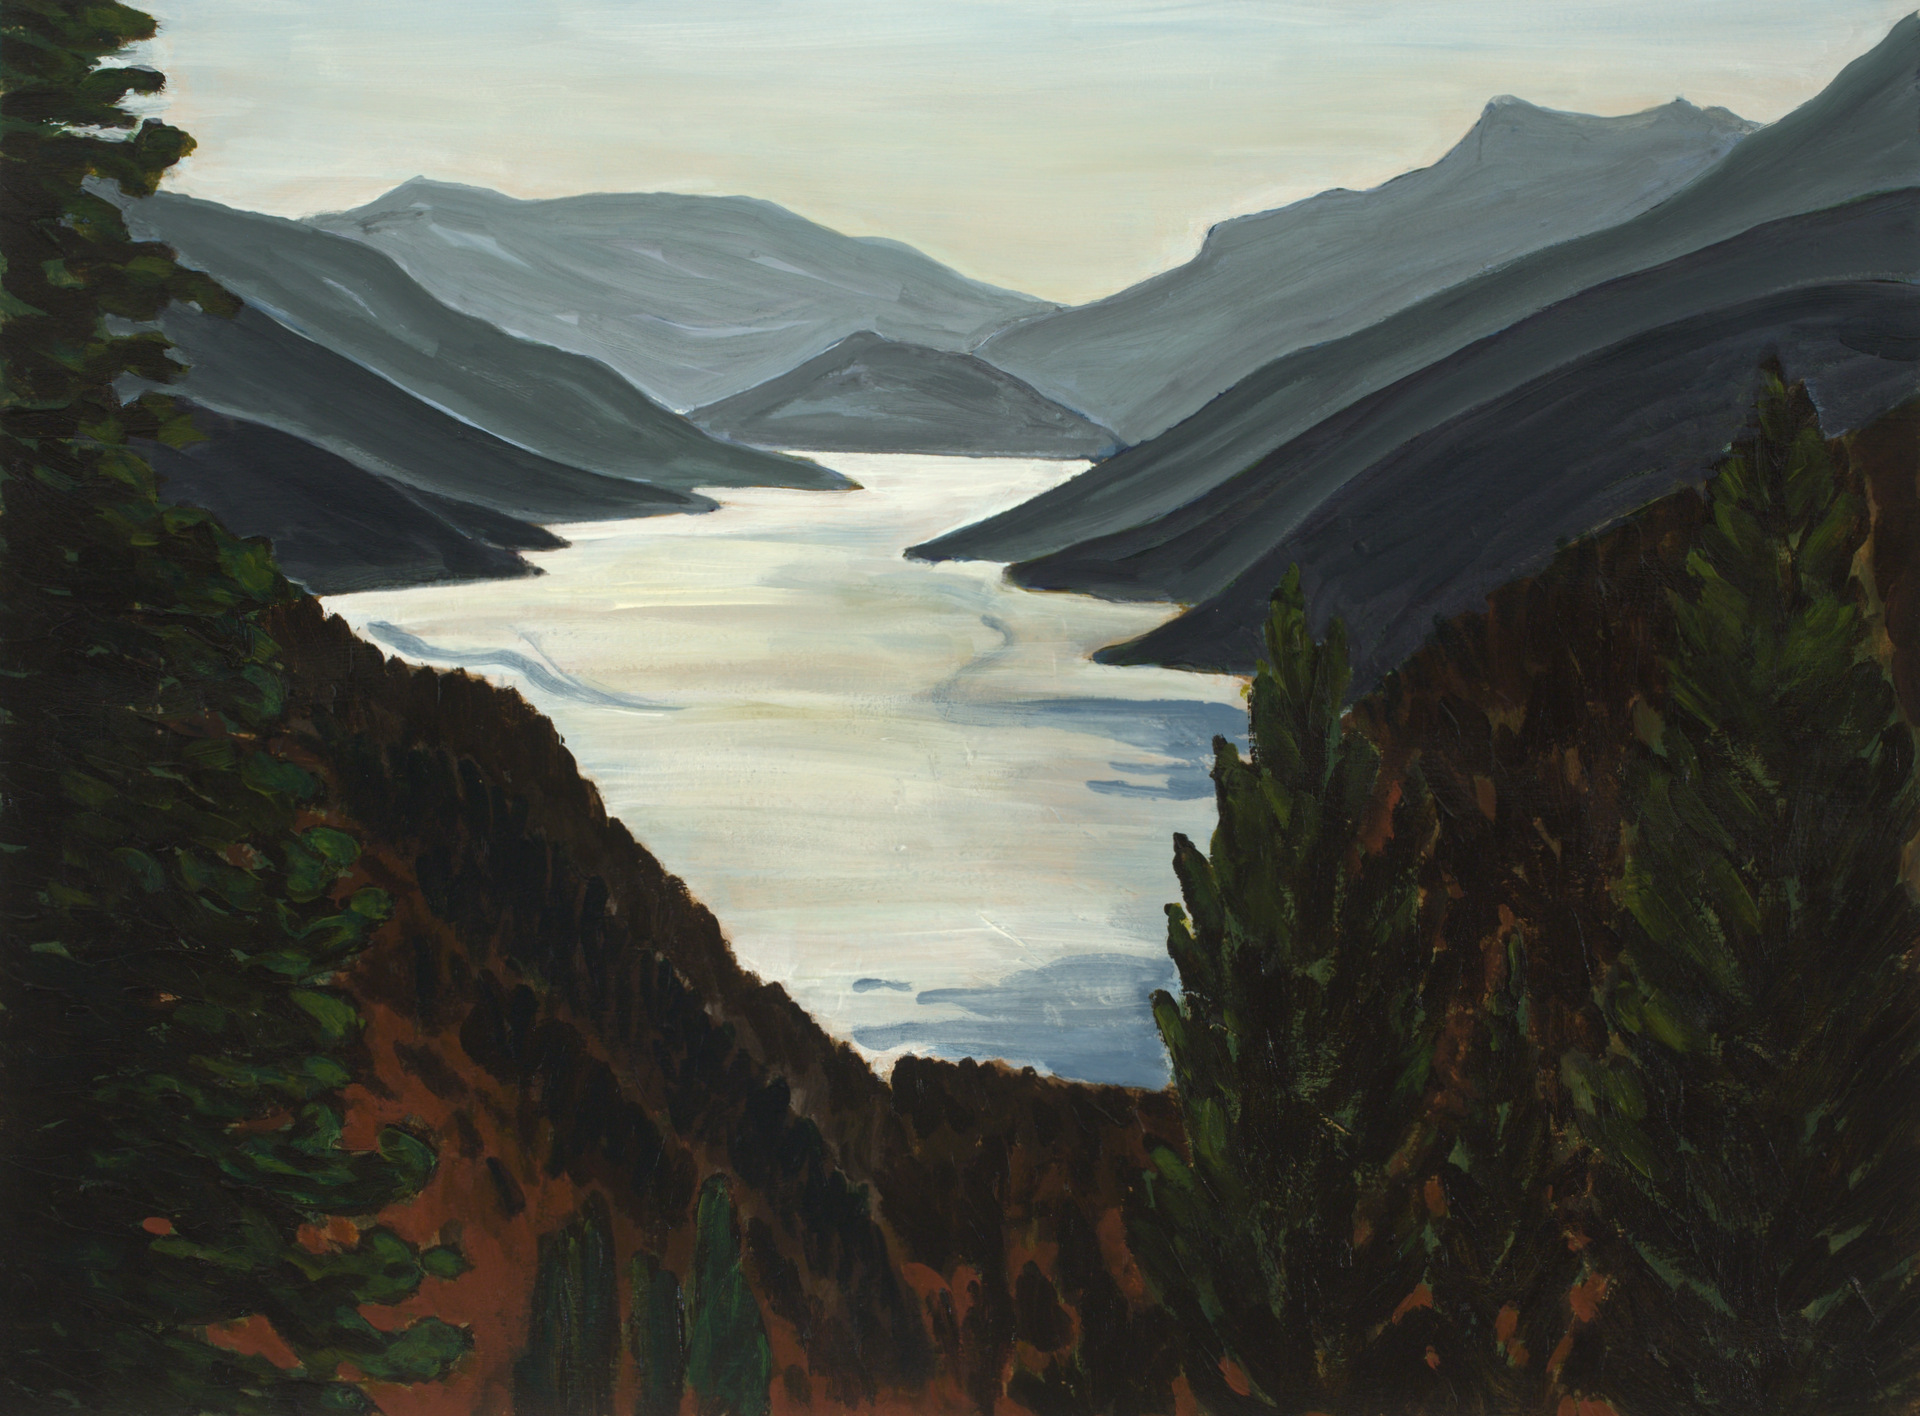 Lake Chelan-22x30 (will be about 27x35 with mat, frame & glass)